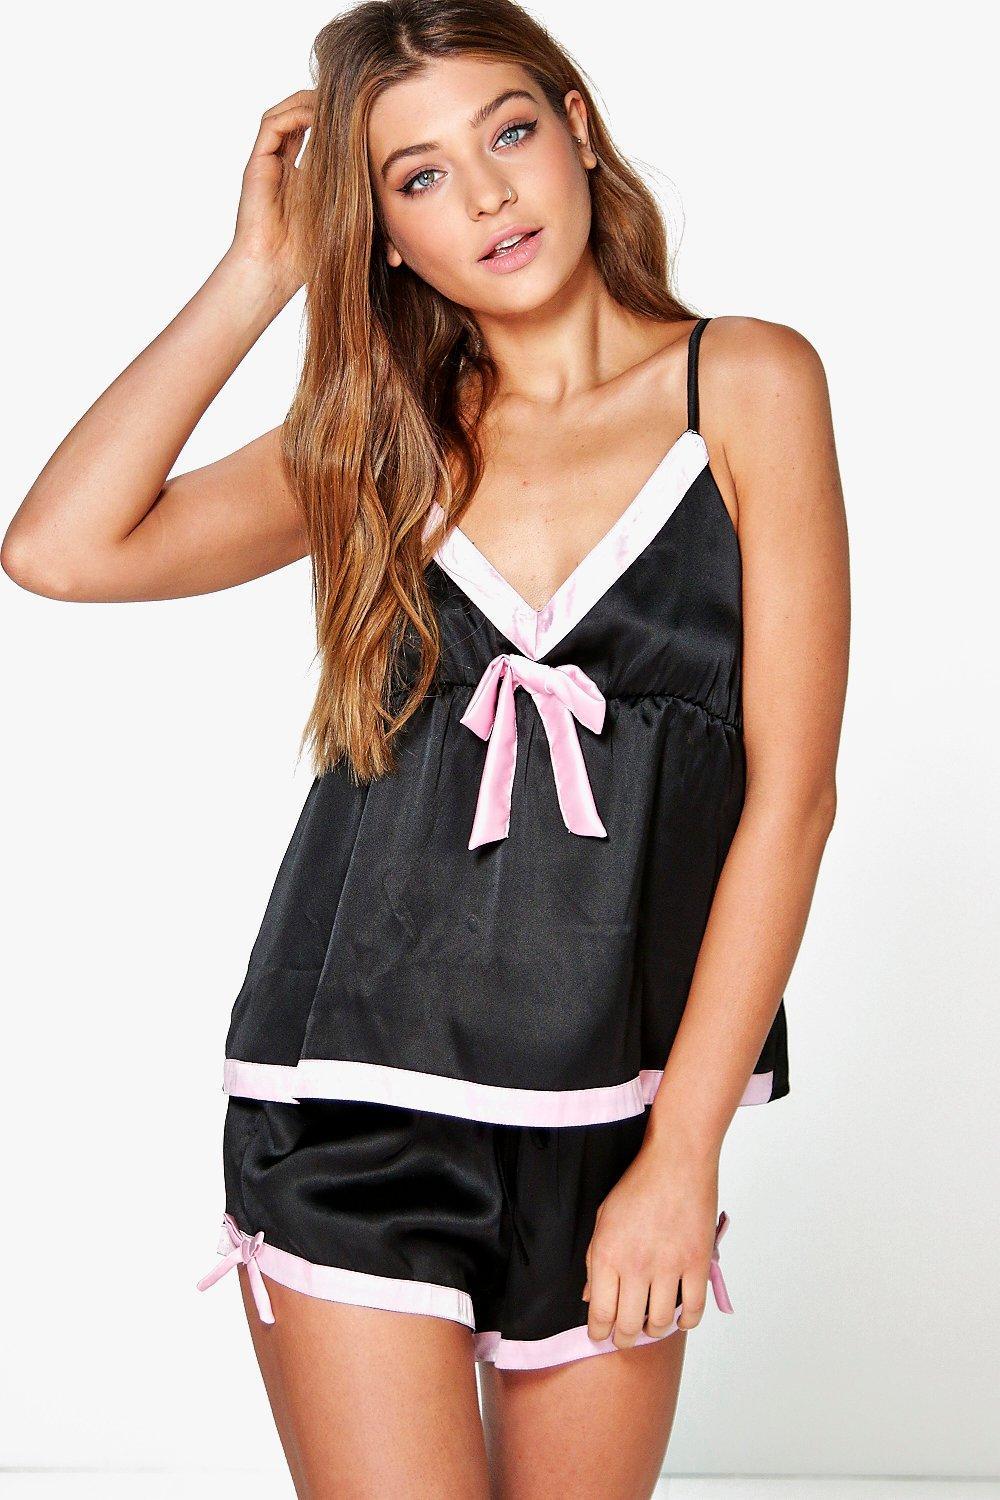 Rachel Contrast Trim Bow Satin Vest And Short Set